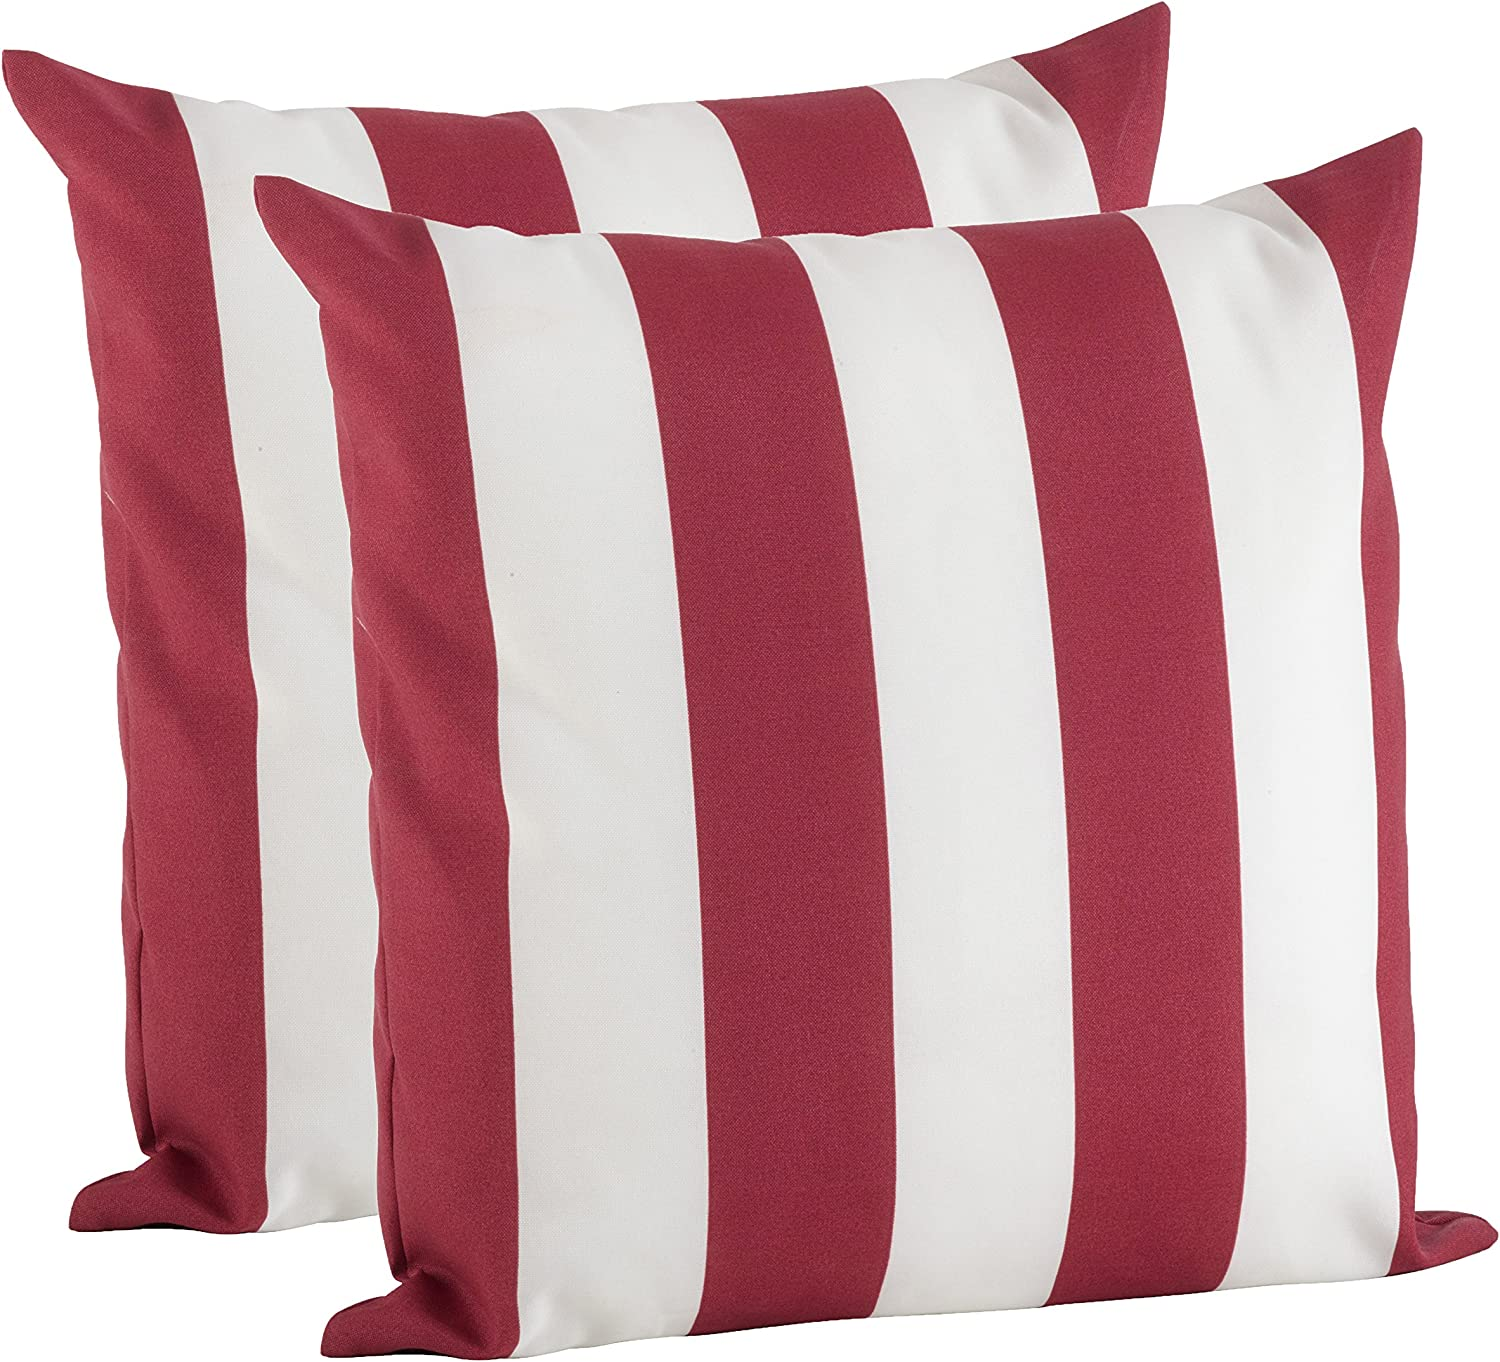 SARO LIFESTYLE Max 69% OFF Outdoor Pillow Collection 2 Pc Rapid rise Cover Striped Set